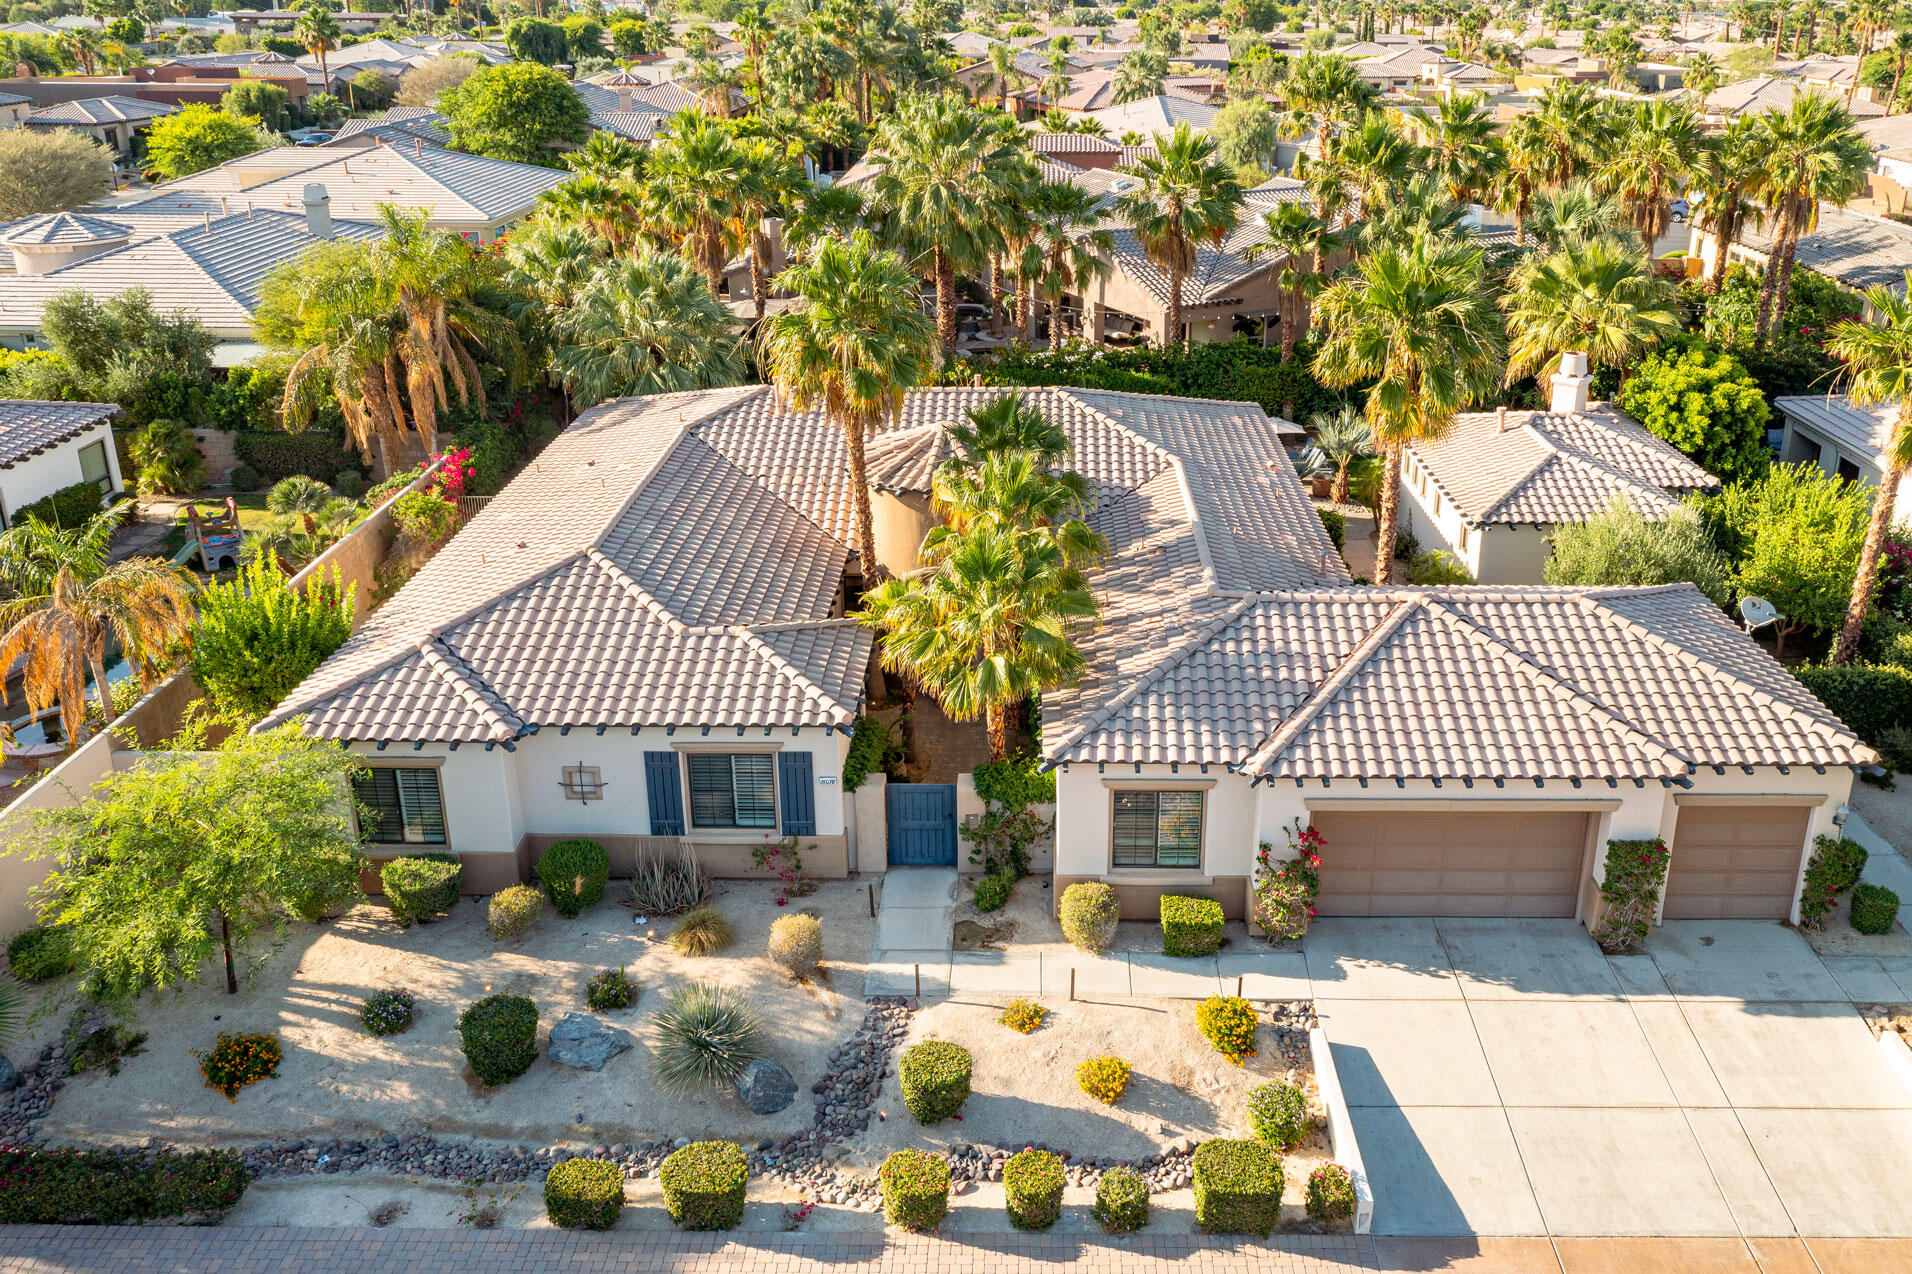 Photo of 81078 Tranquility Drive, Indio, CA 92201